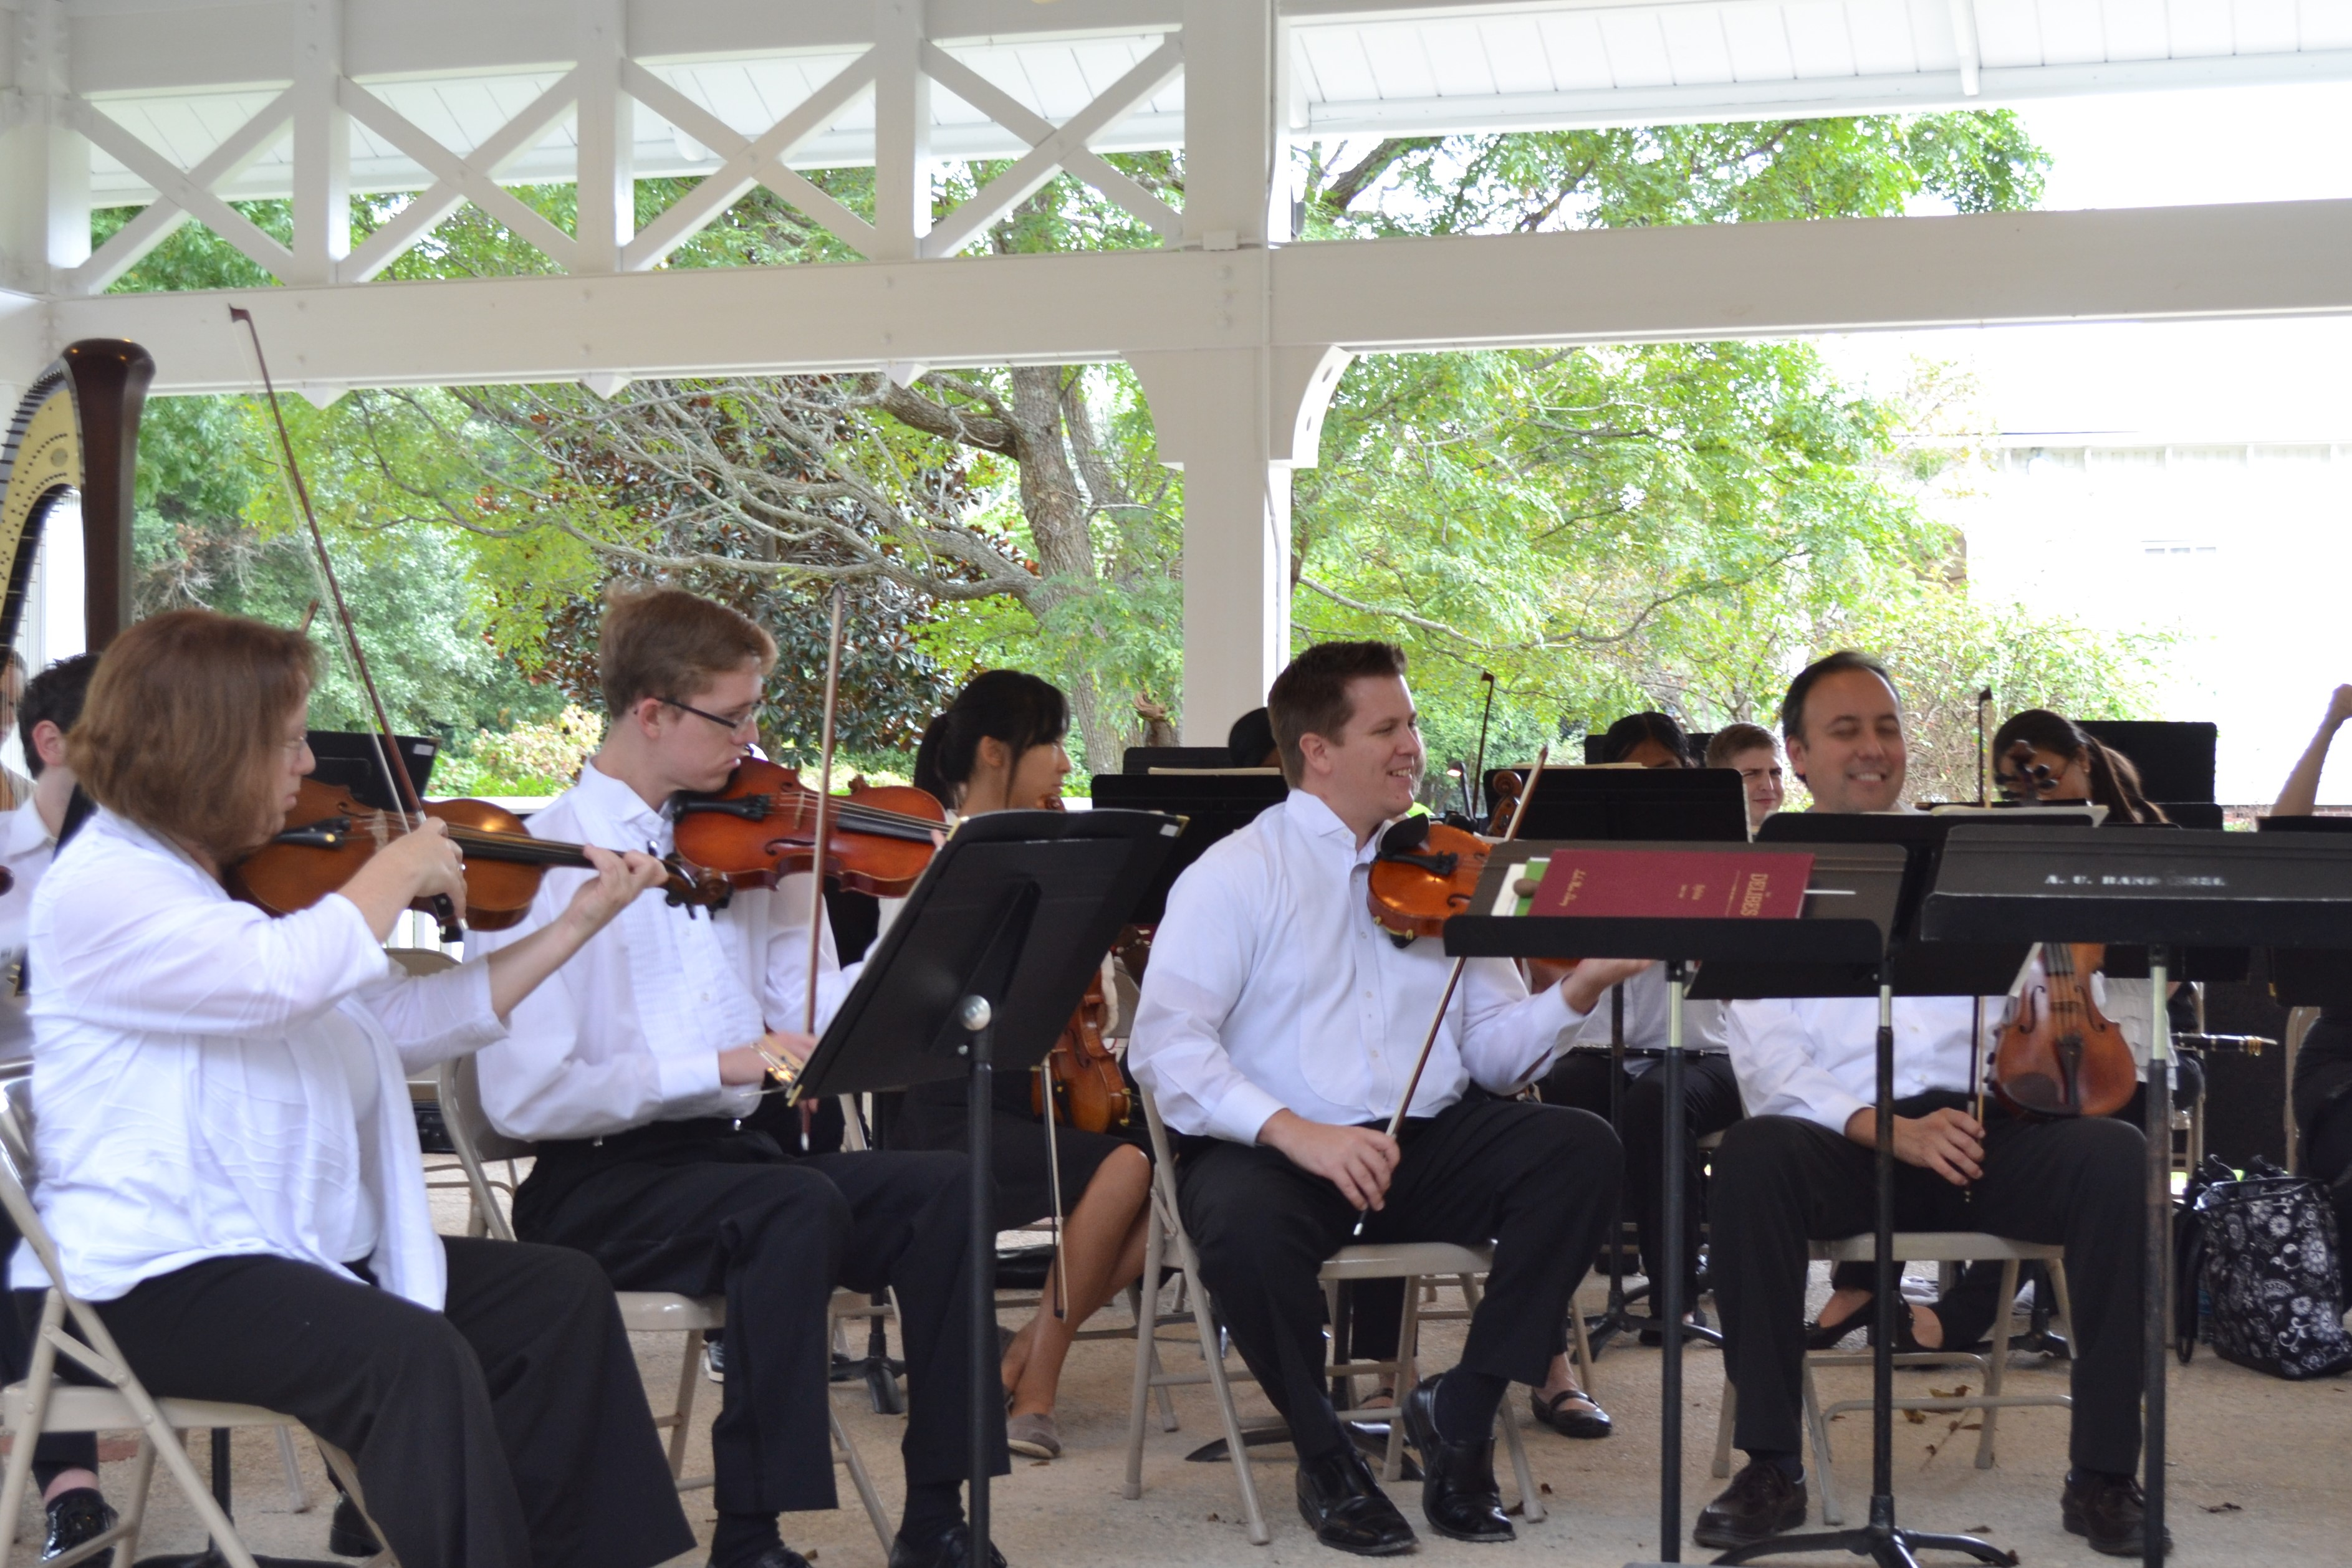 Auburn Community Orchestra meeting to meet new director and